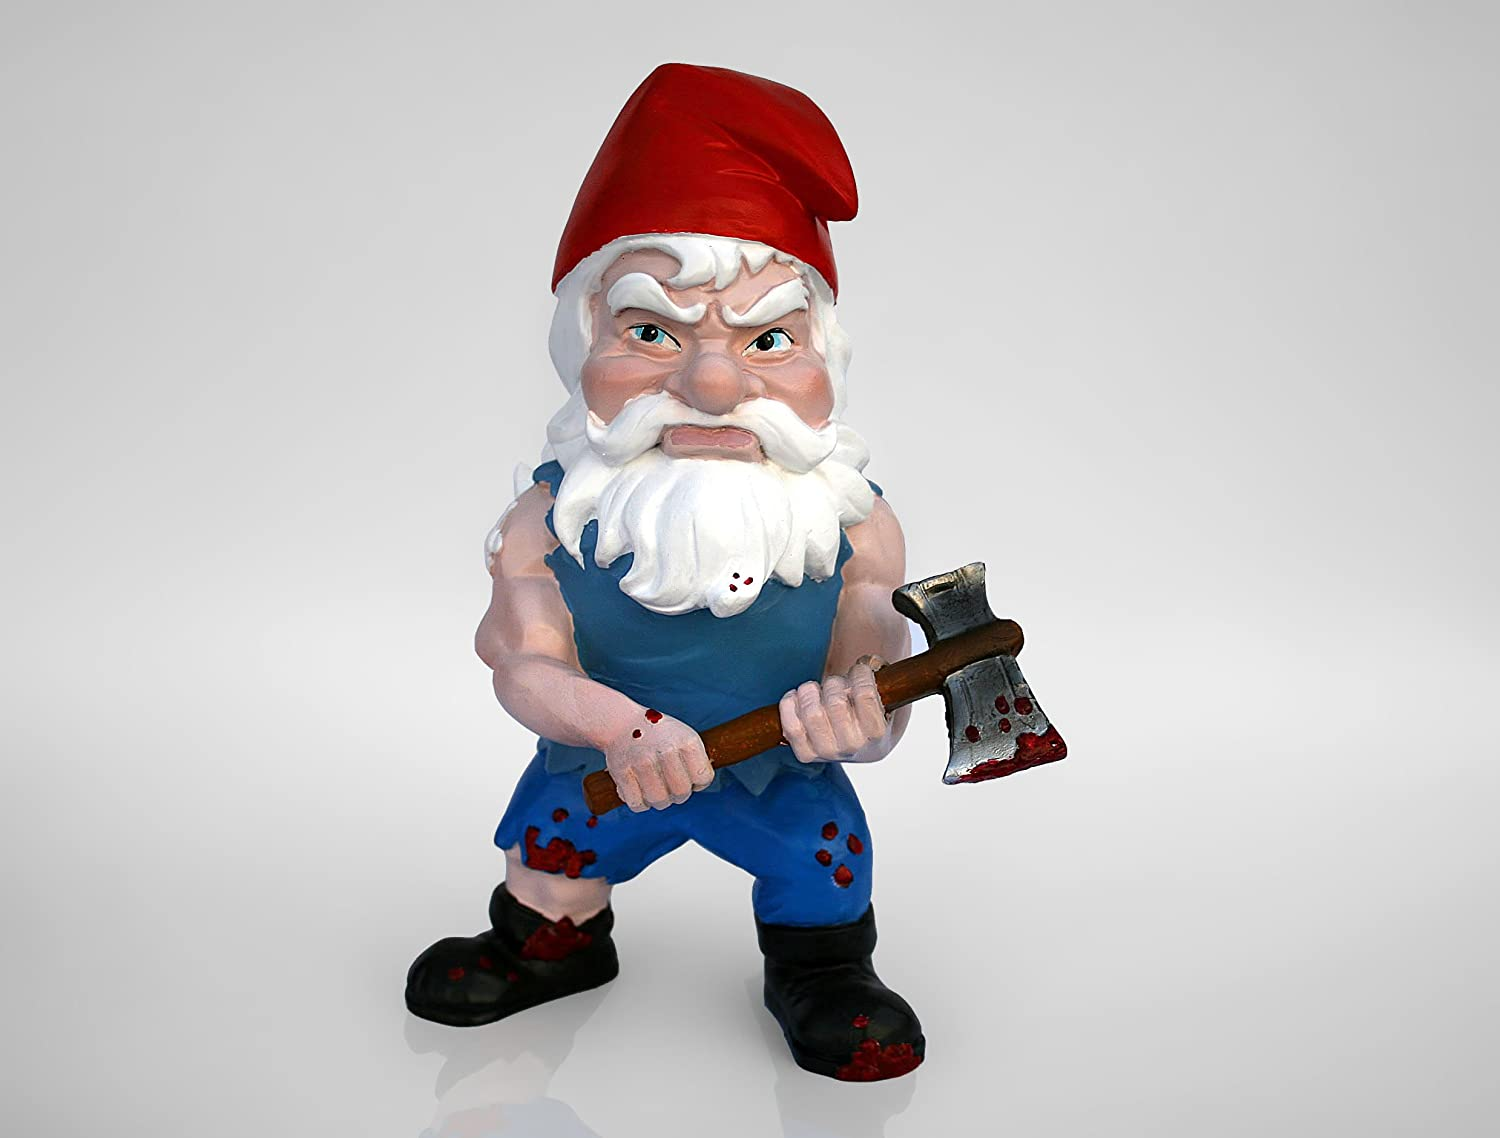 Gnome In Garden: The Geeky Gift Guide: Attack Of The Undead Zombie Gnomes